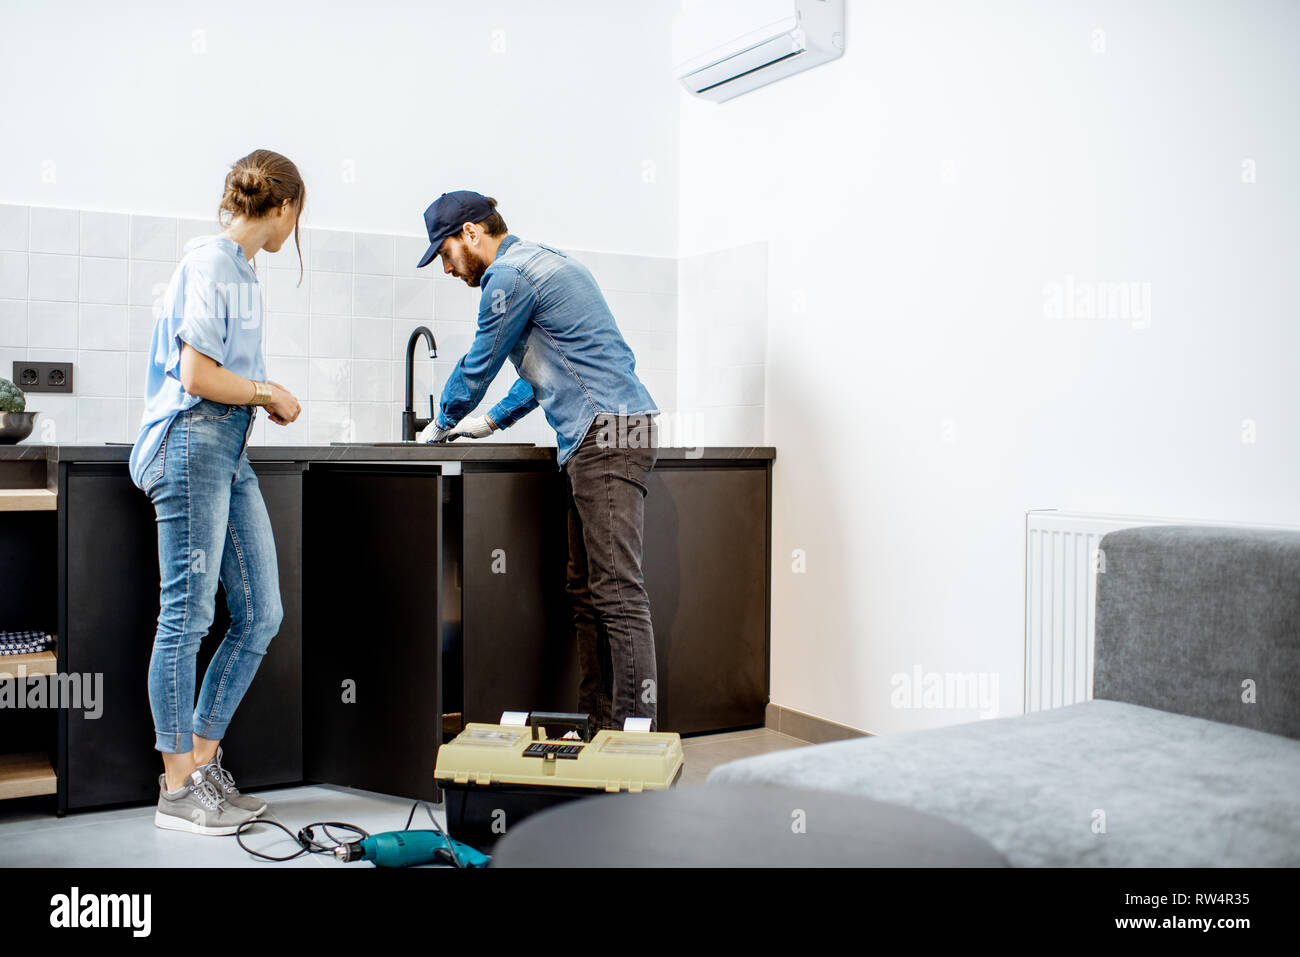 https www alamy com plumber or handyman repairing kitchen faucet standing with young woman in the apartment home repair service concept image239207113 html